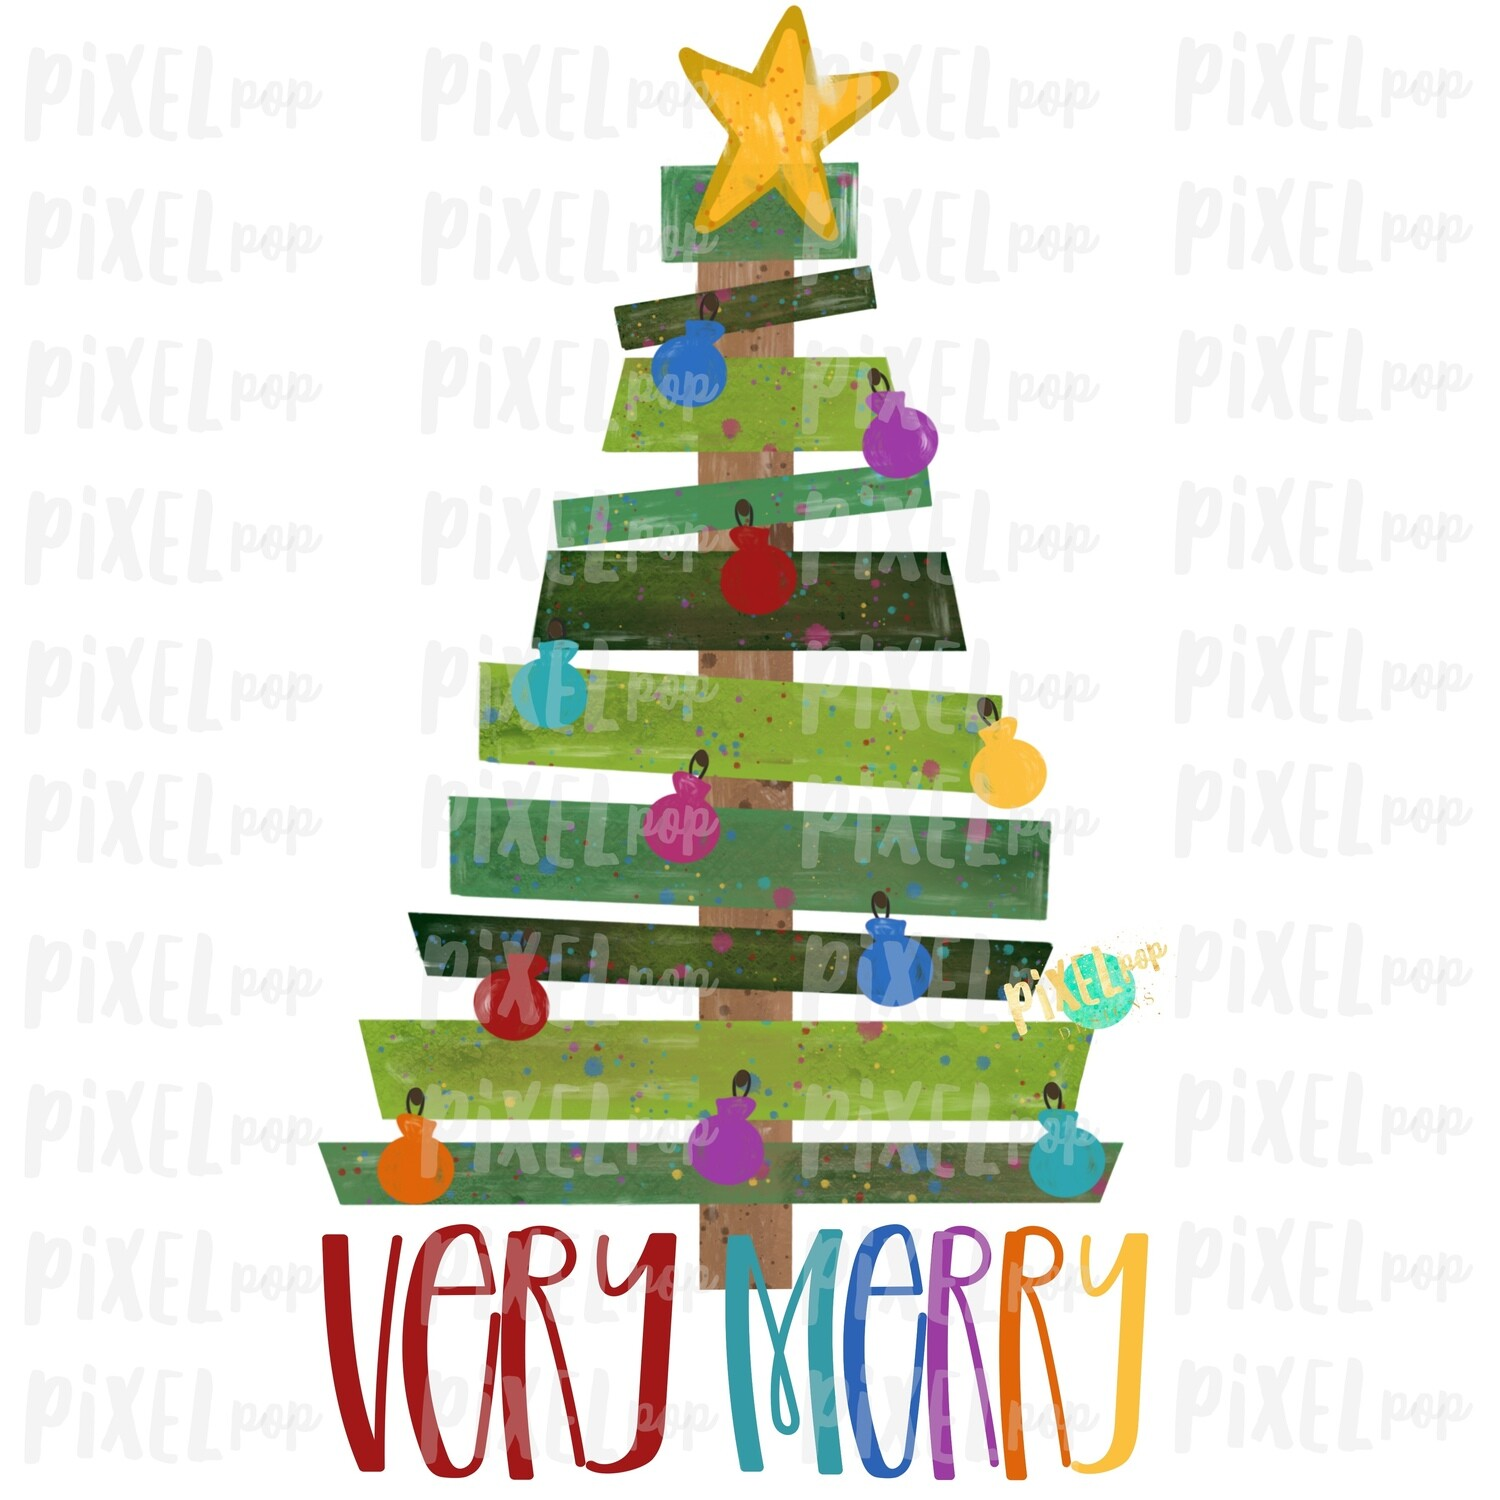 Very Merry Wood Pallet Christmas Tree Sublimation PNG | Hand Painted Design | Sublimation PNG | Digital Download | Printable Artwork